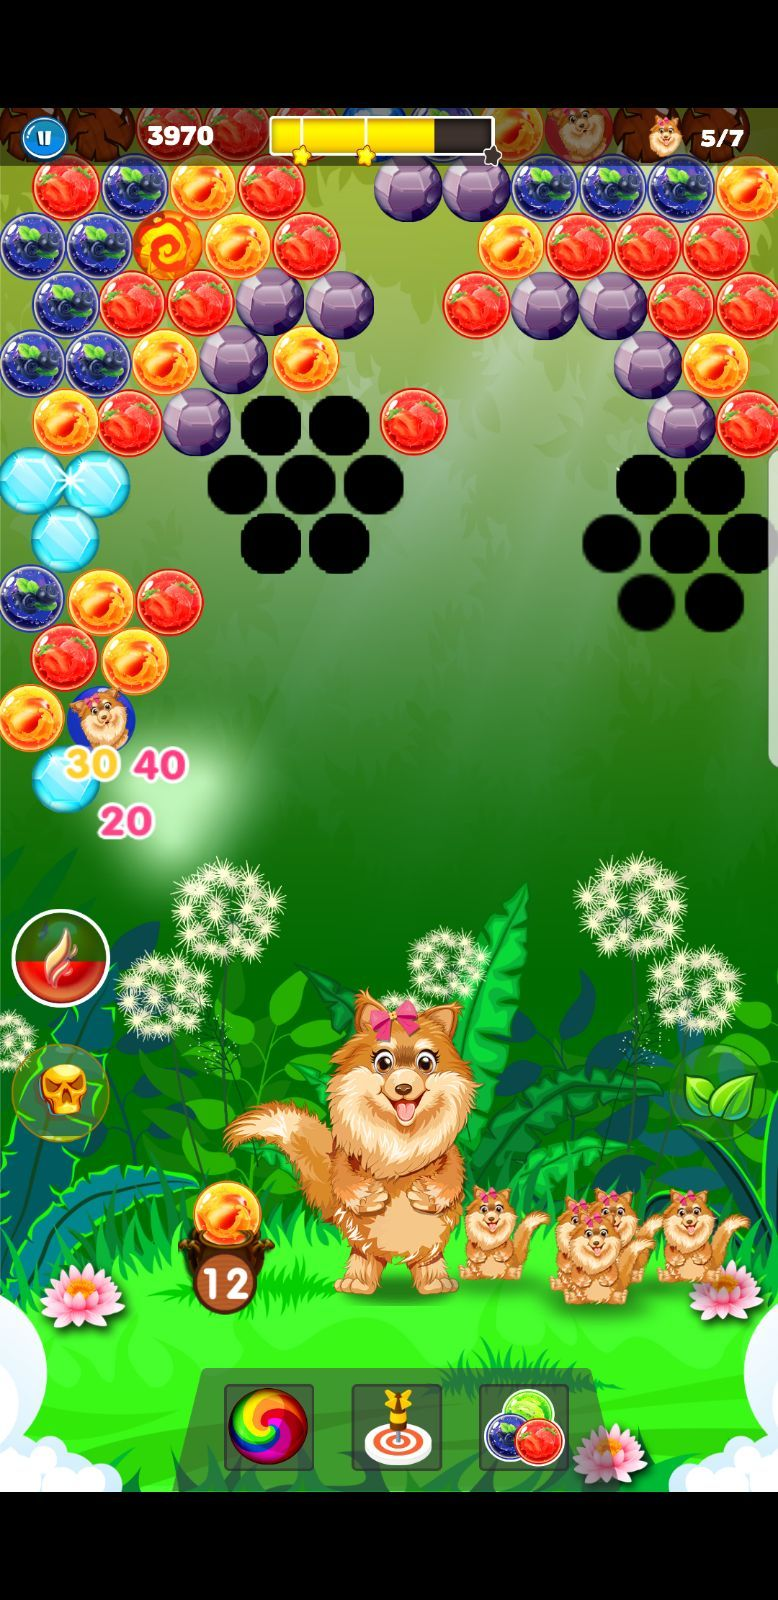 Shoot Doggy bubbles with same colors combinations